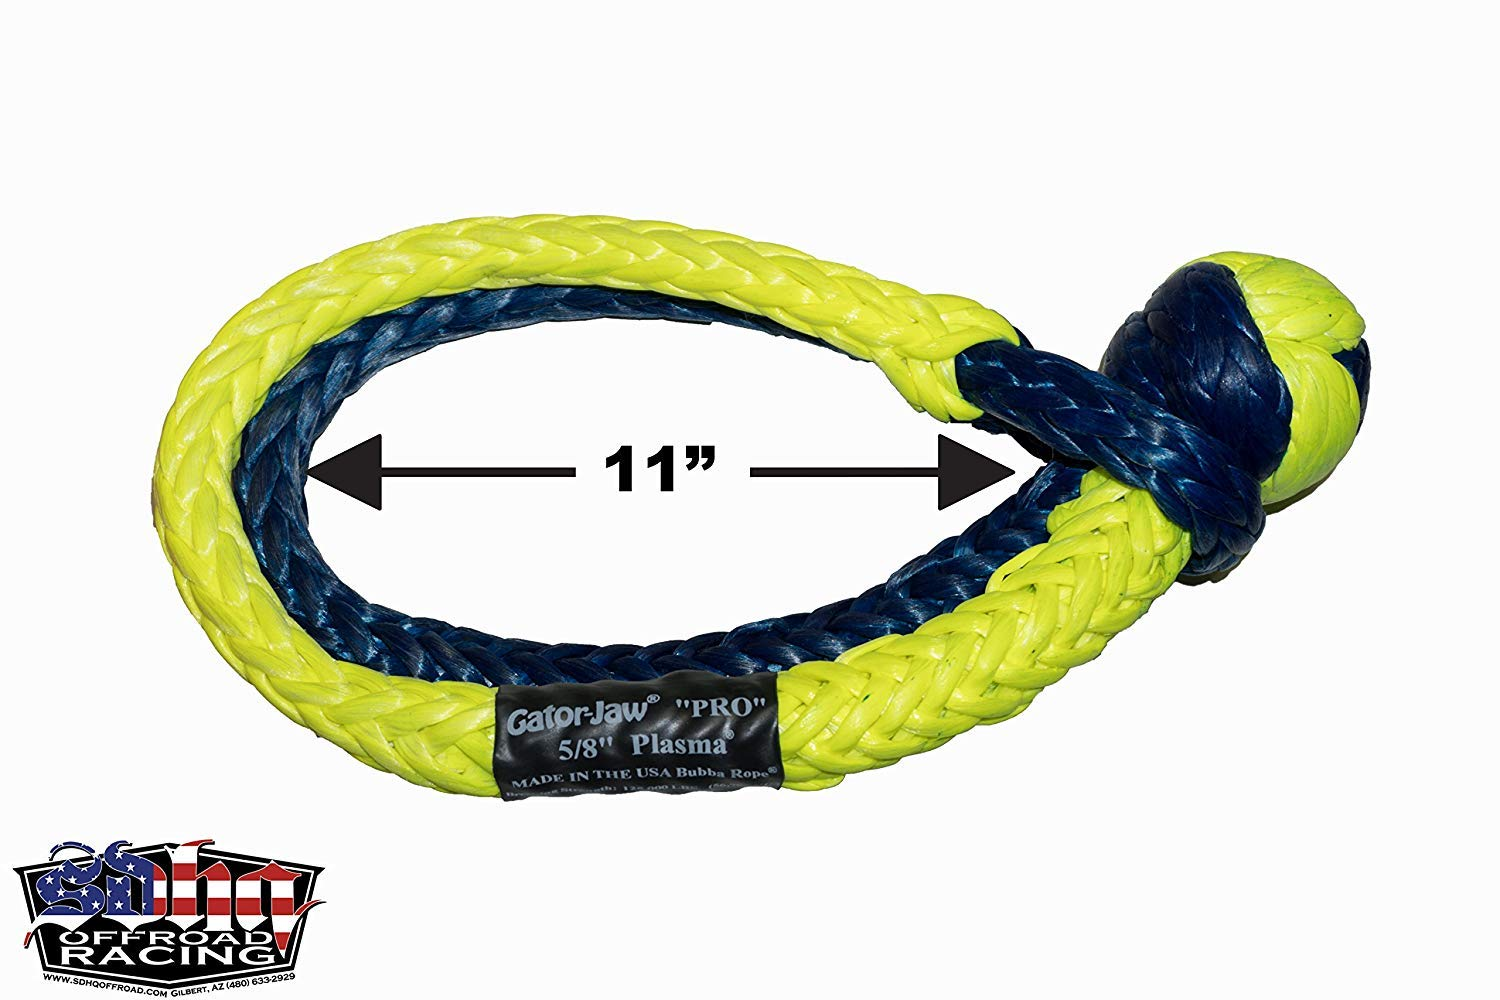 Bubba Rope Gator-Jaw Pro Synthetic Soft Shackle 125,000lb Breaking Strength Mega Yellow /& Blue